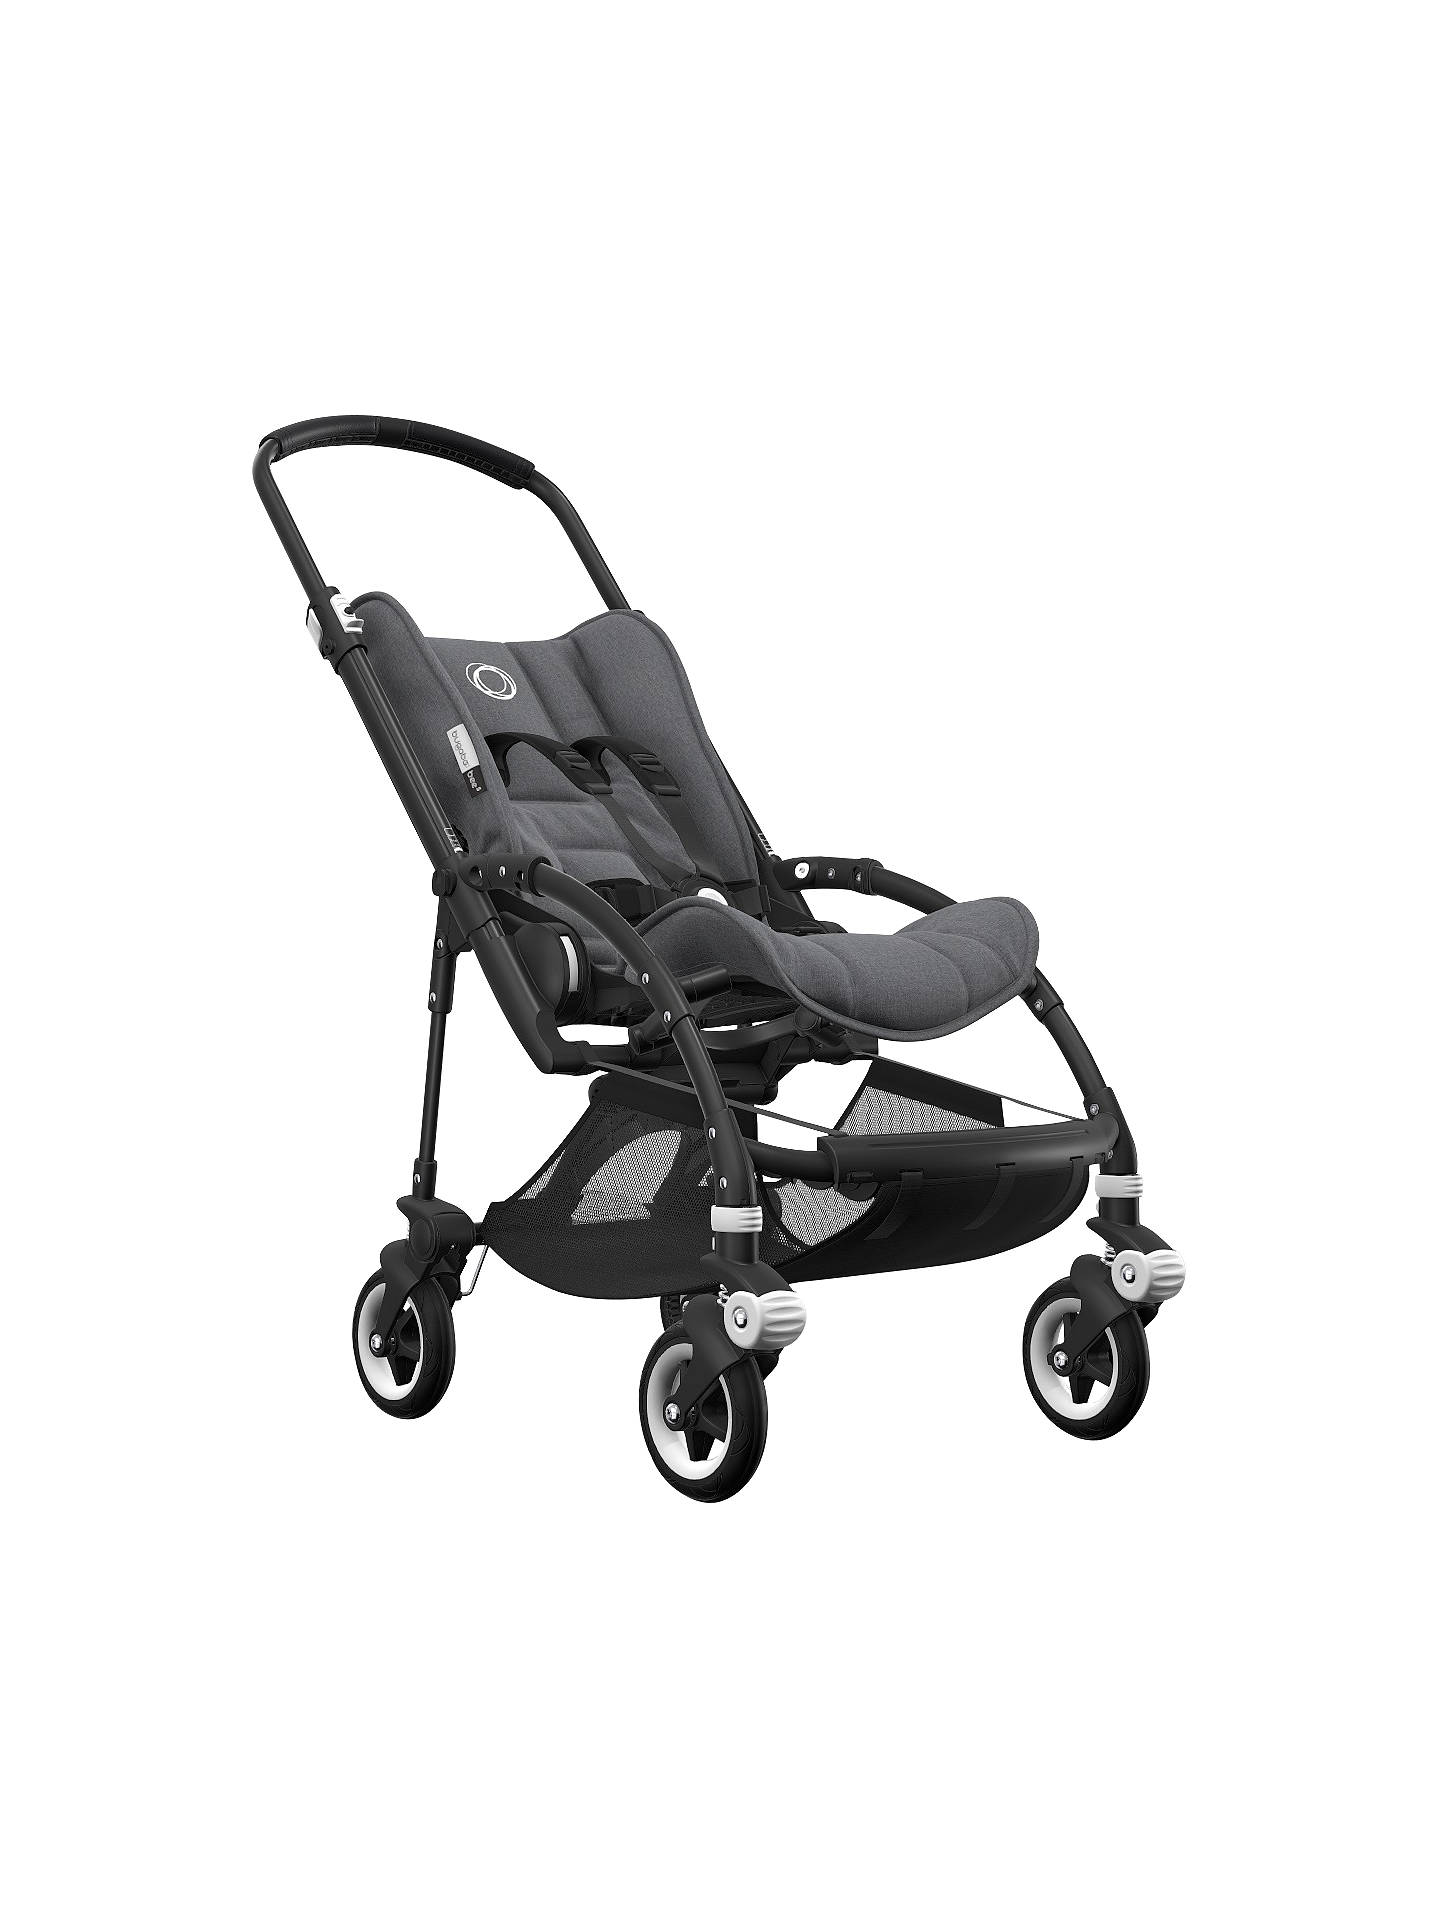 BuyBugaboo Bee5 Complete Pushchair, Black with Black Handles and Grey Melange Fabric Online at johnlewis.com